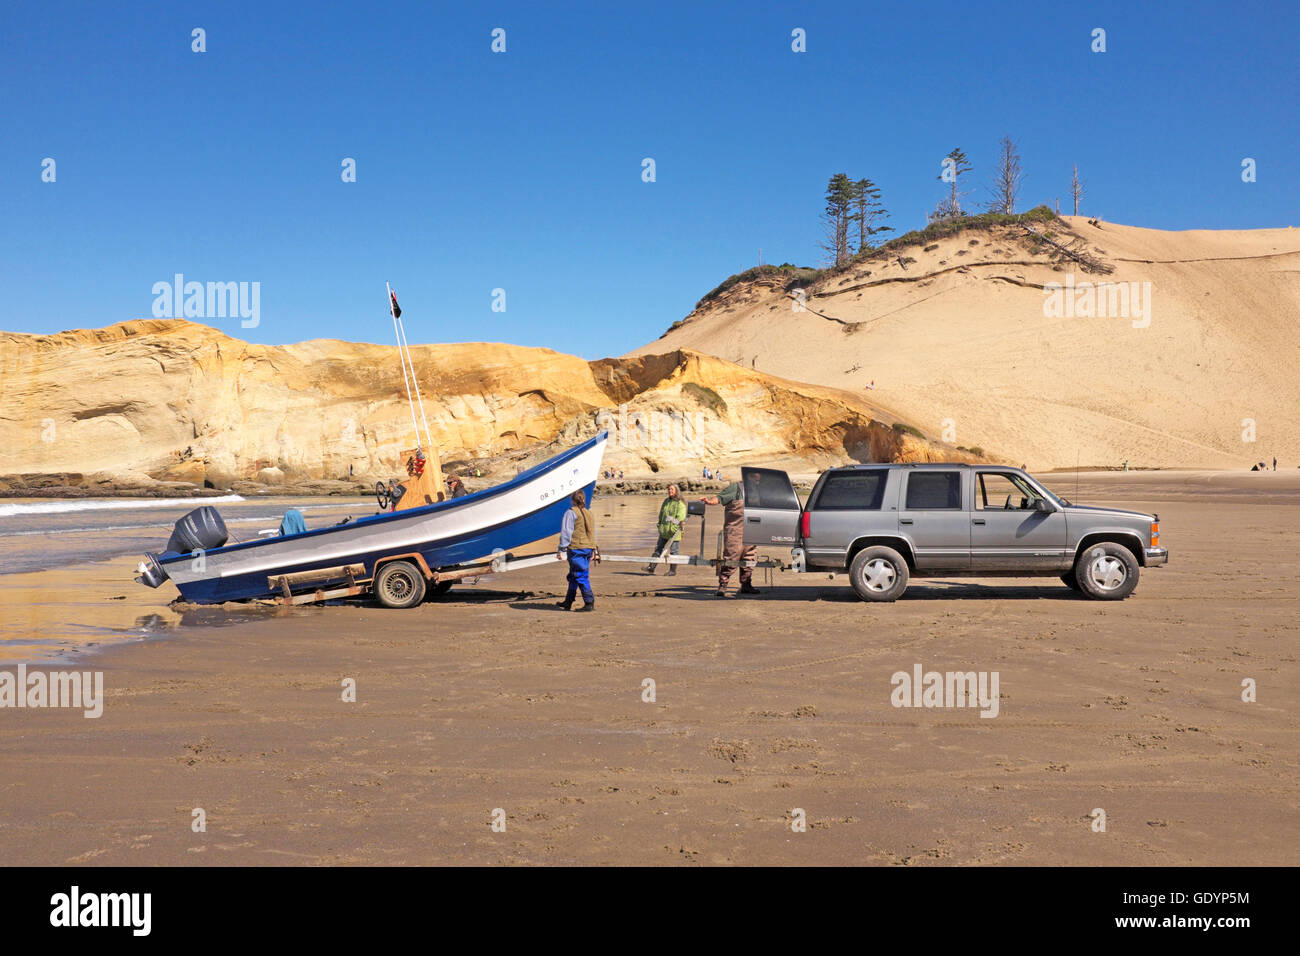 A dory fisherman stands near his boat on the beach at Pacific City, Oregon, home of the Pacific city Dory Fleet. - Stock Image